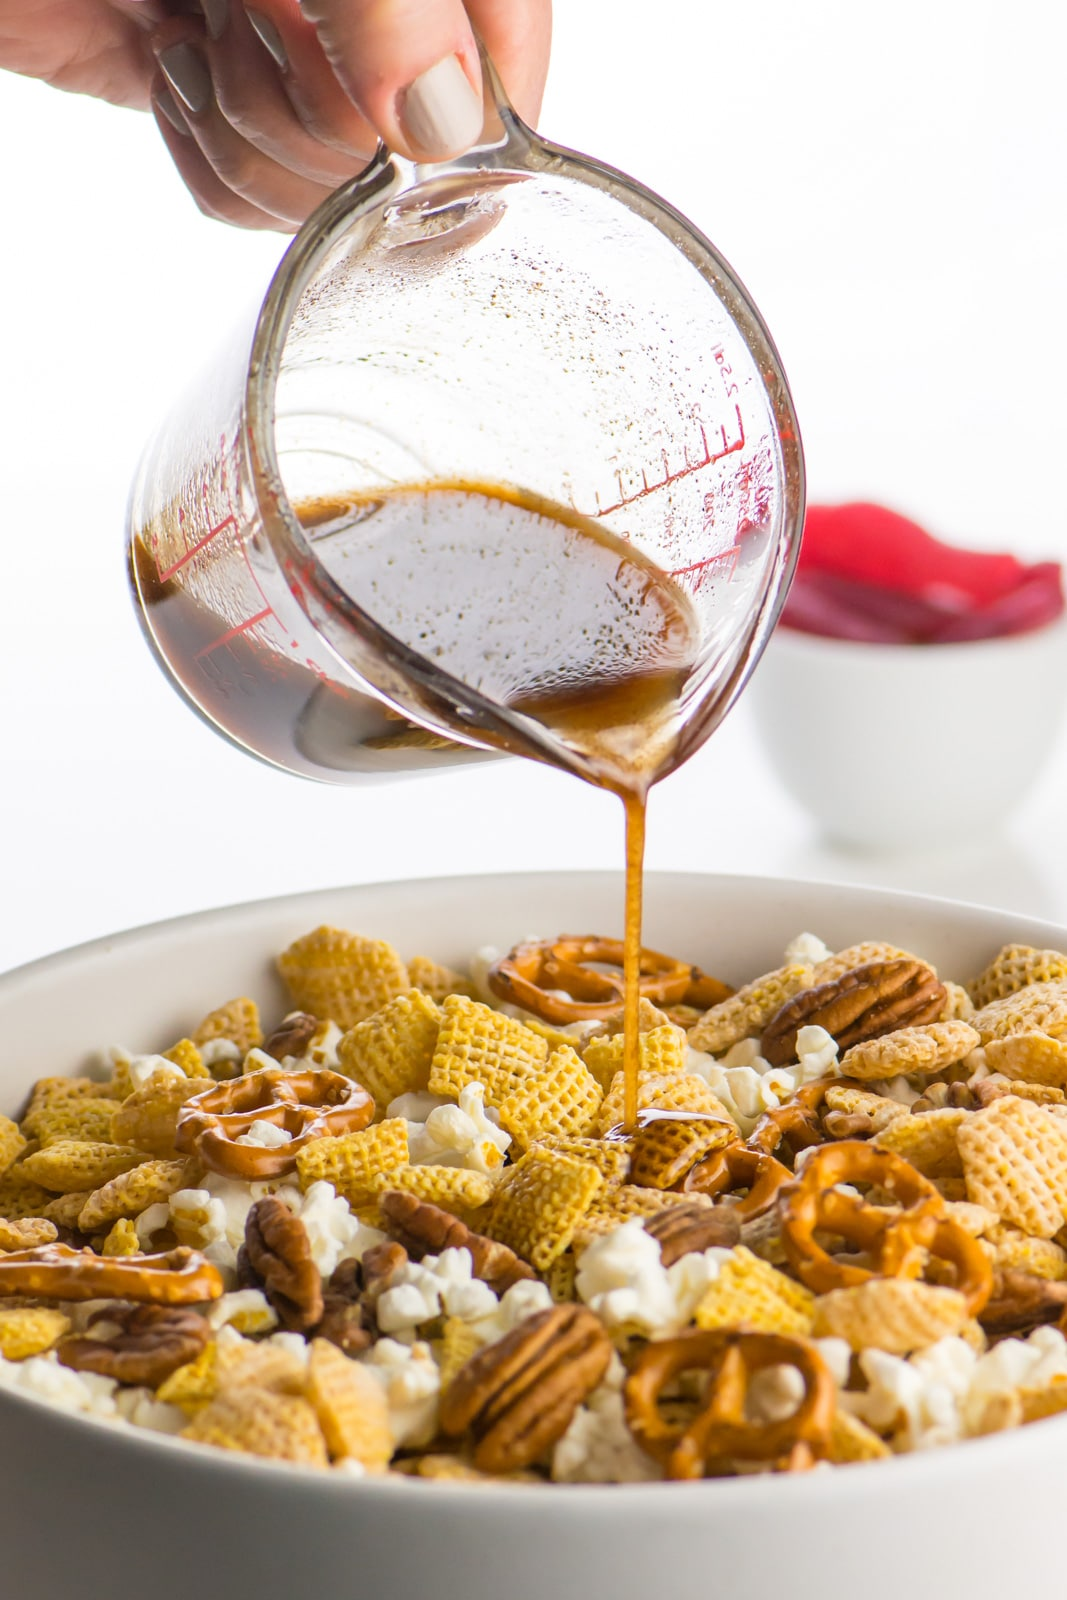 This vegan pumpkin-spiced snack mix is so easy to make!